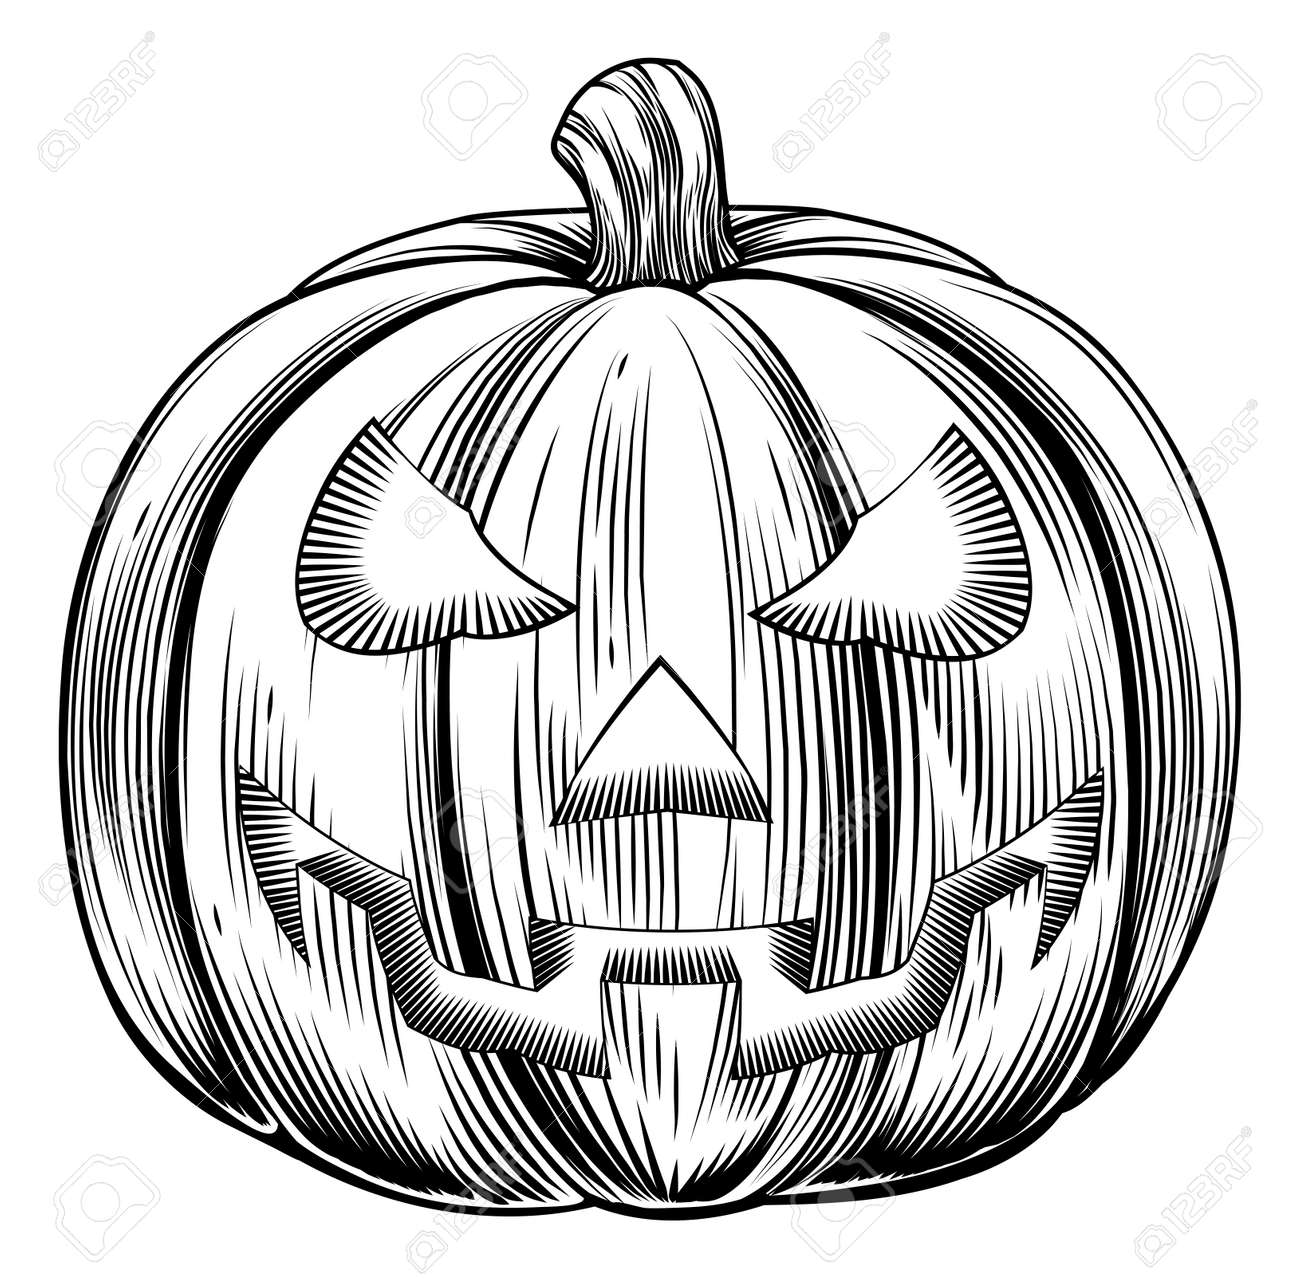 An illustration of a Halloween pumpkin in a retro vintage woodblock or woodcut etching style Stock Vector - 22497557